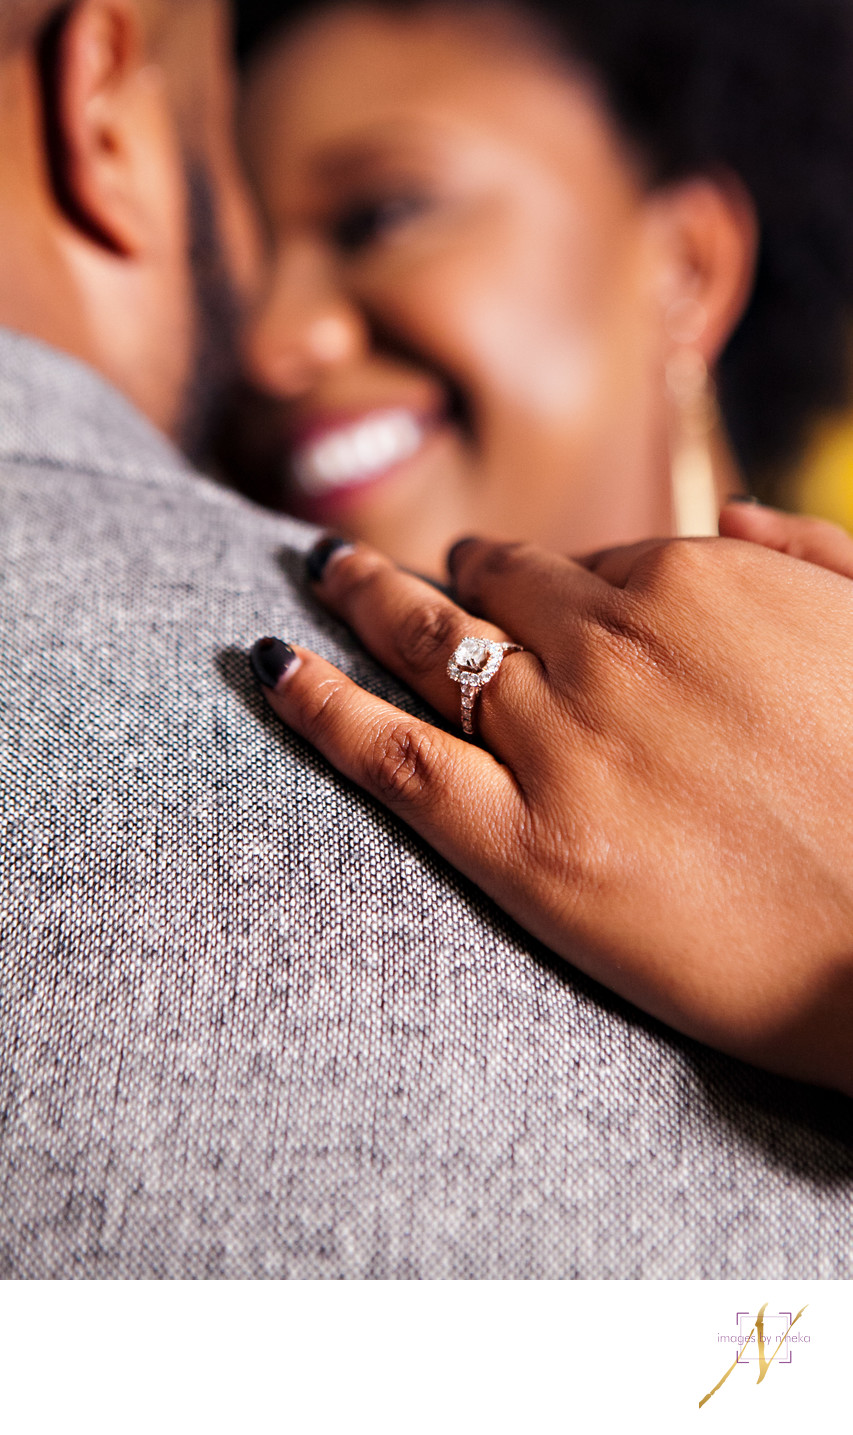 Engagement ring portrait